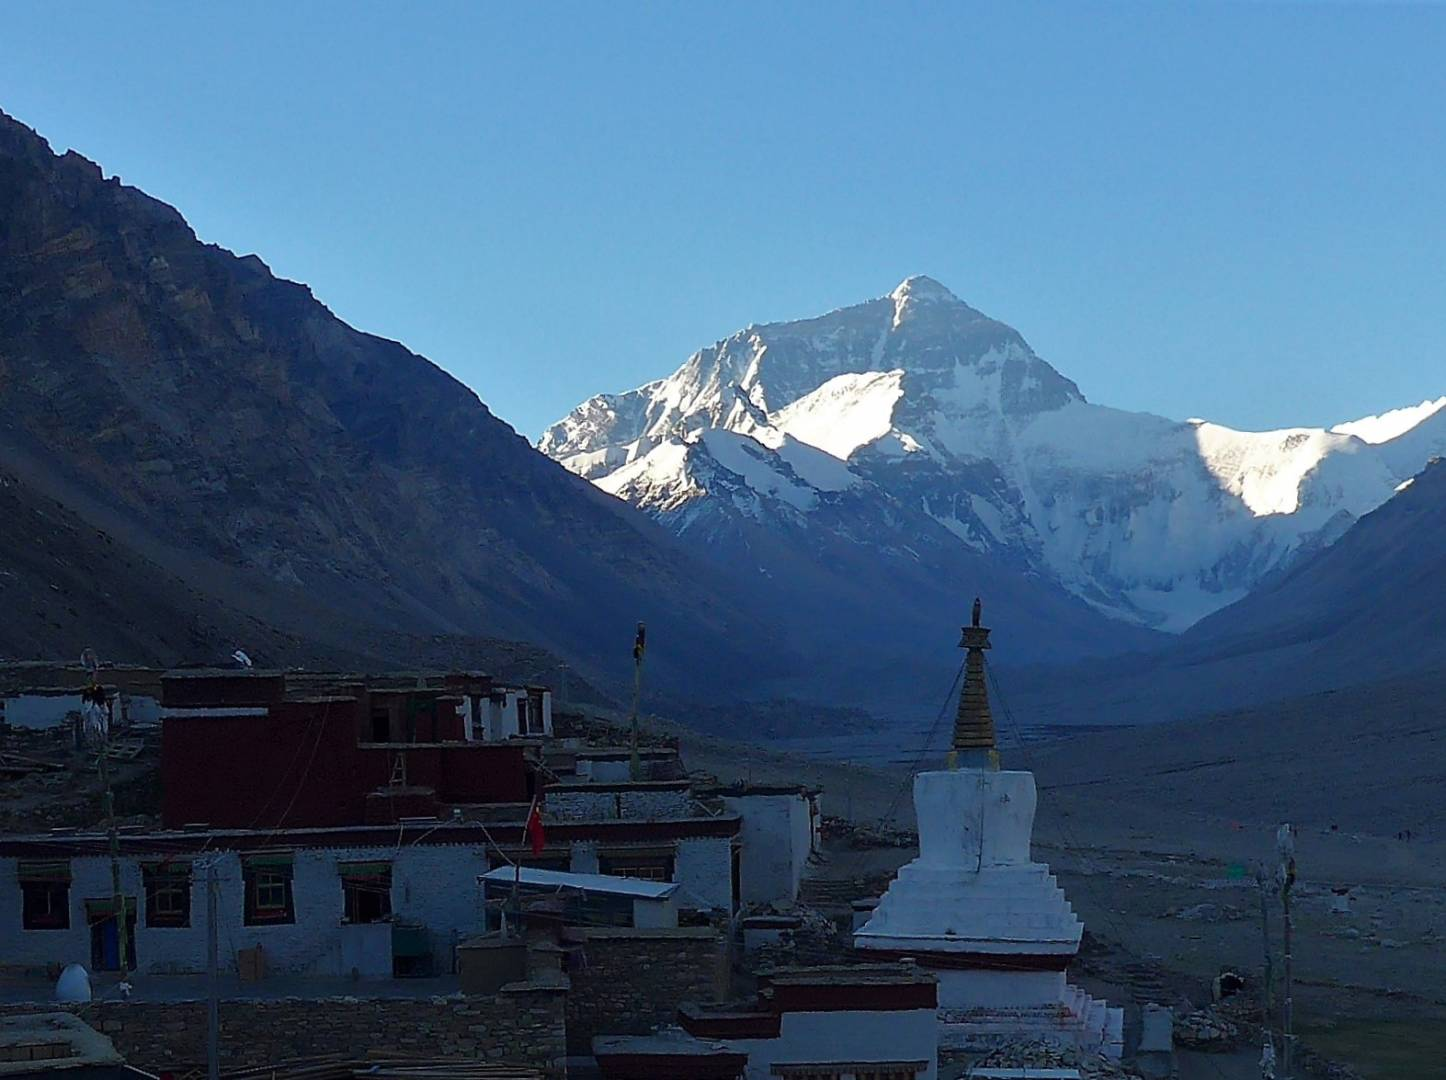 Sunrise. Photos were taken overlooking the Rombuk Monastery in the foreground